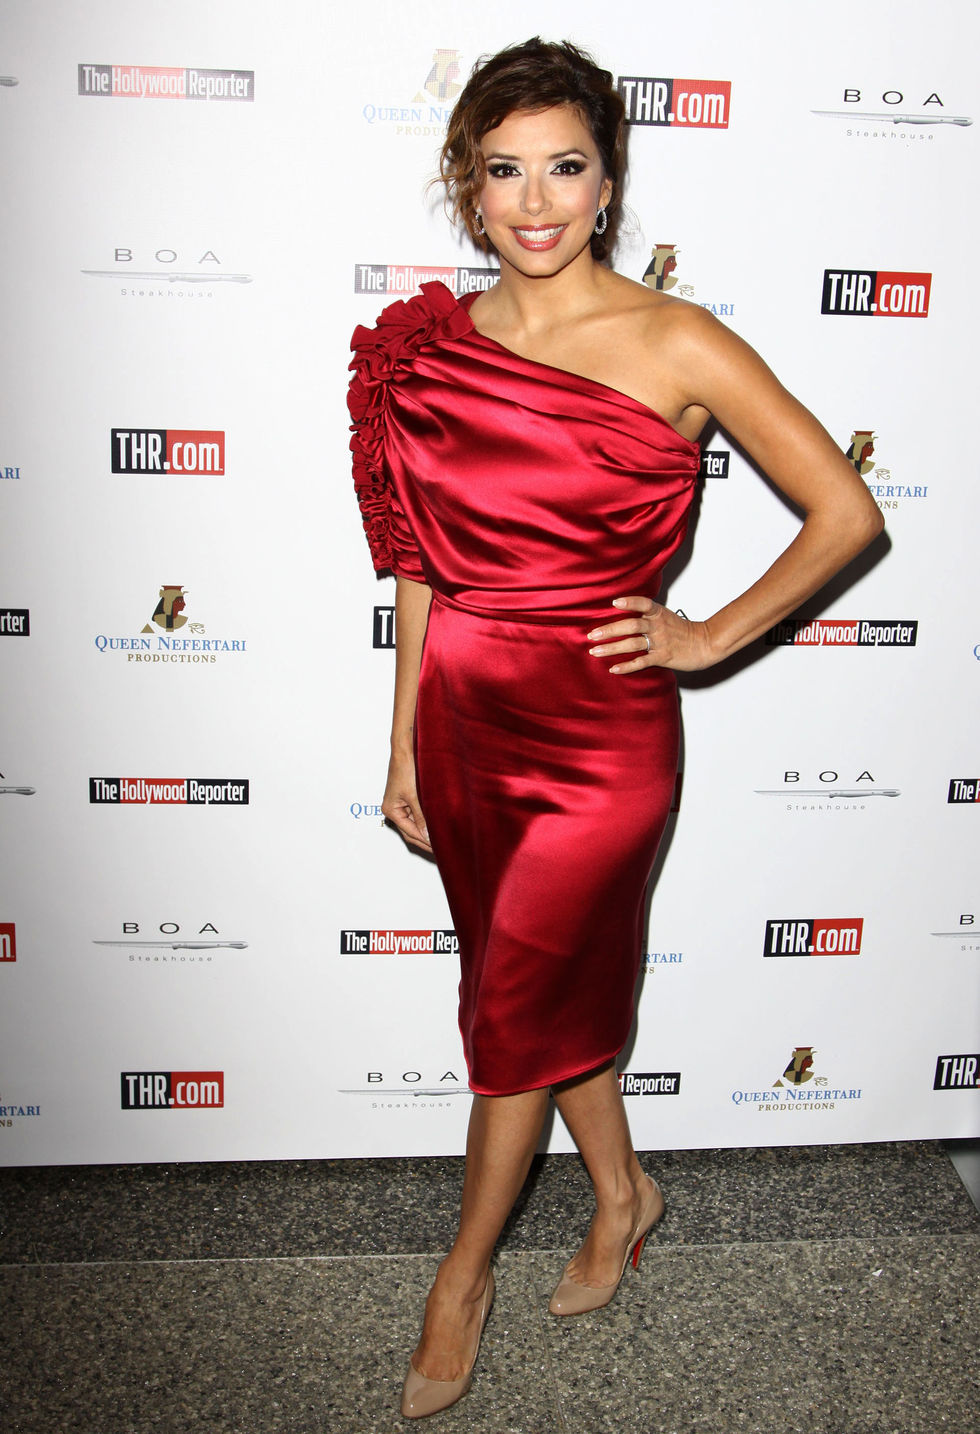 eva-longoria-philanthropist-of-the-year-award-reception-in-los-angeles-01